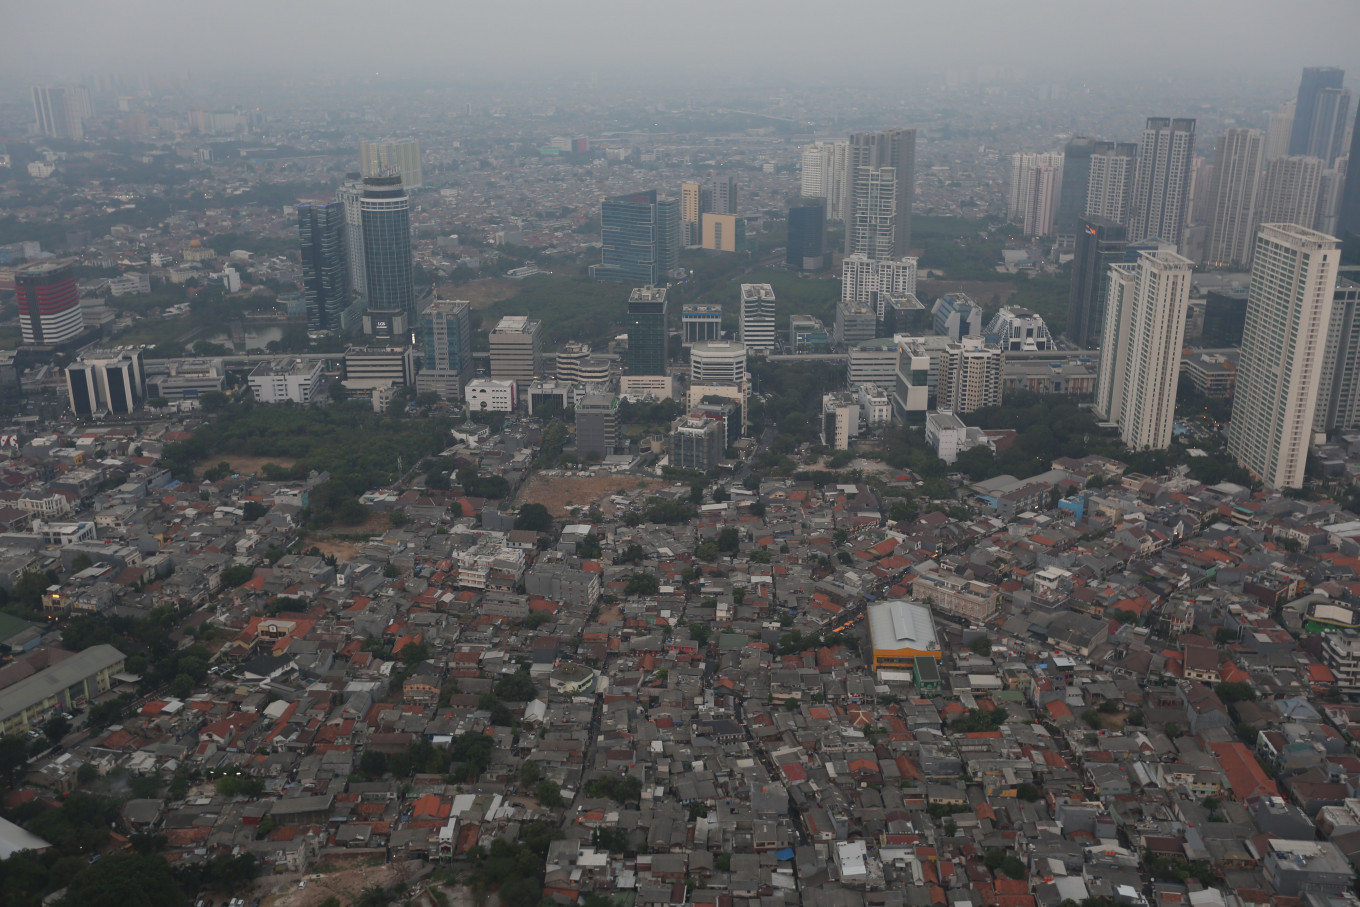 Doing nothing for air pollution violates human rights, Komnas HAM says